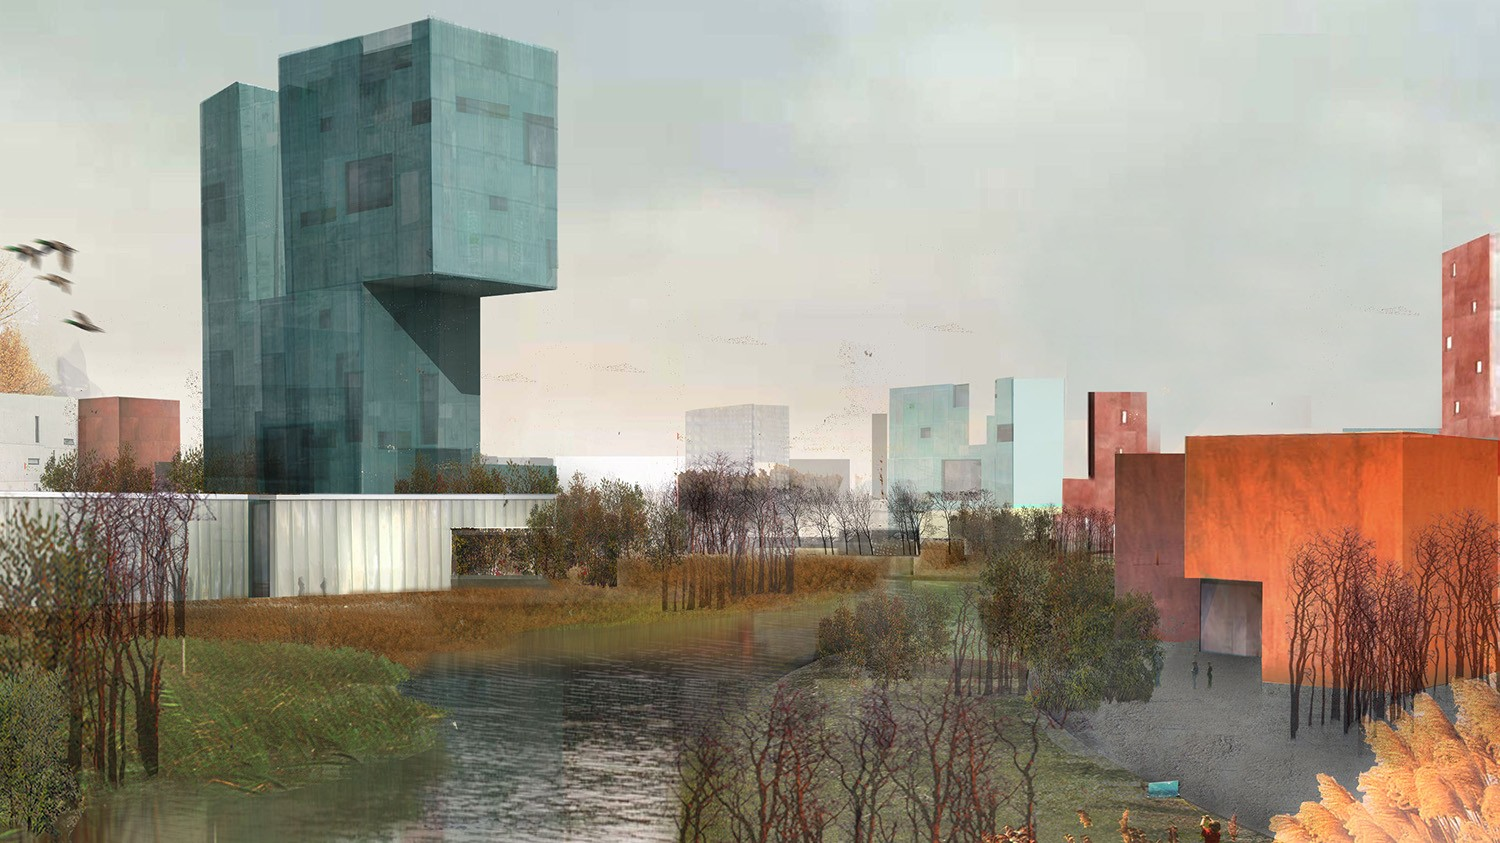 https://stevenholl.sfo2.digitaloceanspaces.com/uploads/projects/project-images/StevenHollArchitects_Wuhan_003_view_f_WH.jpg